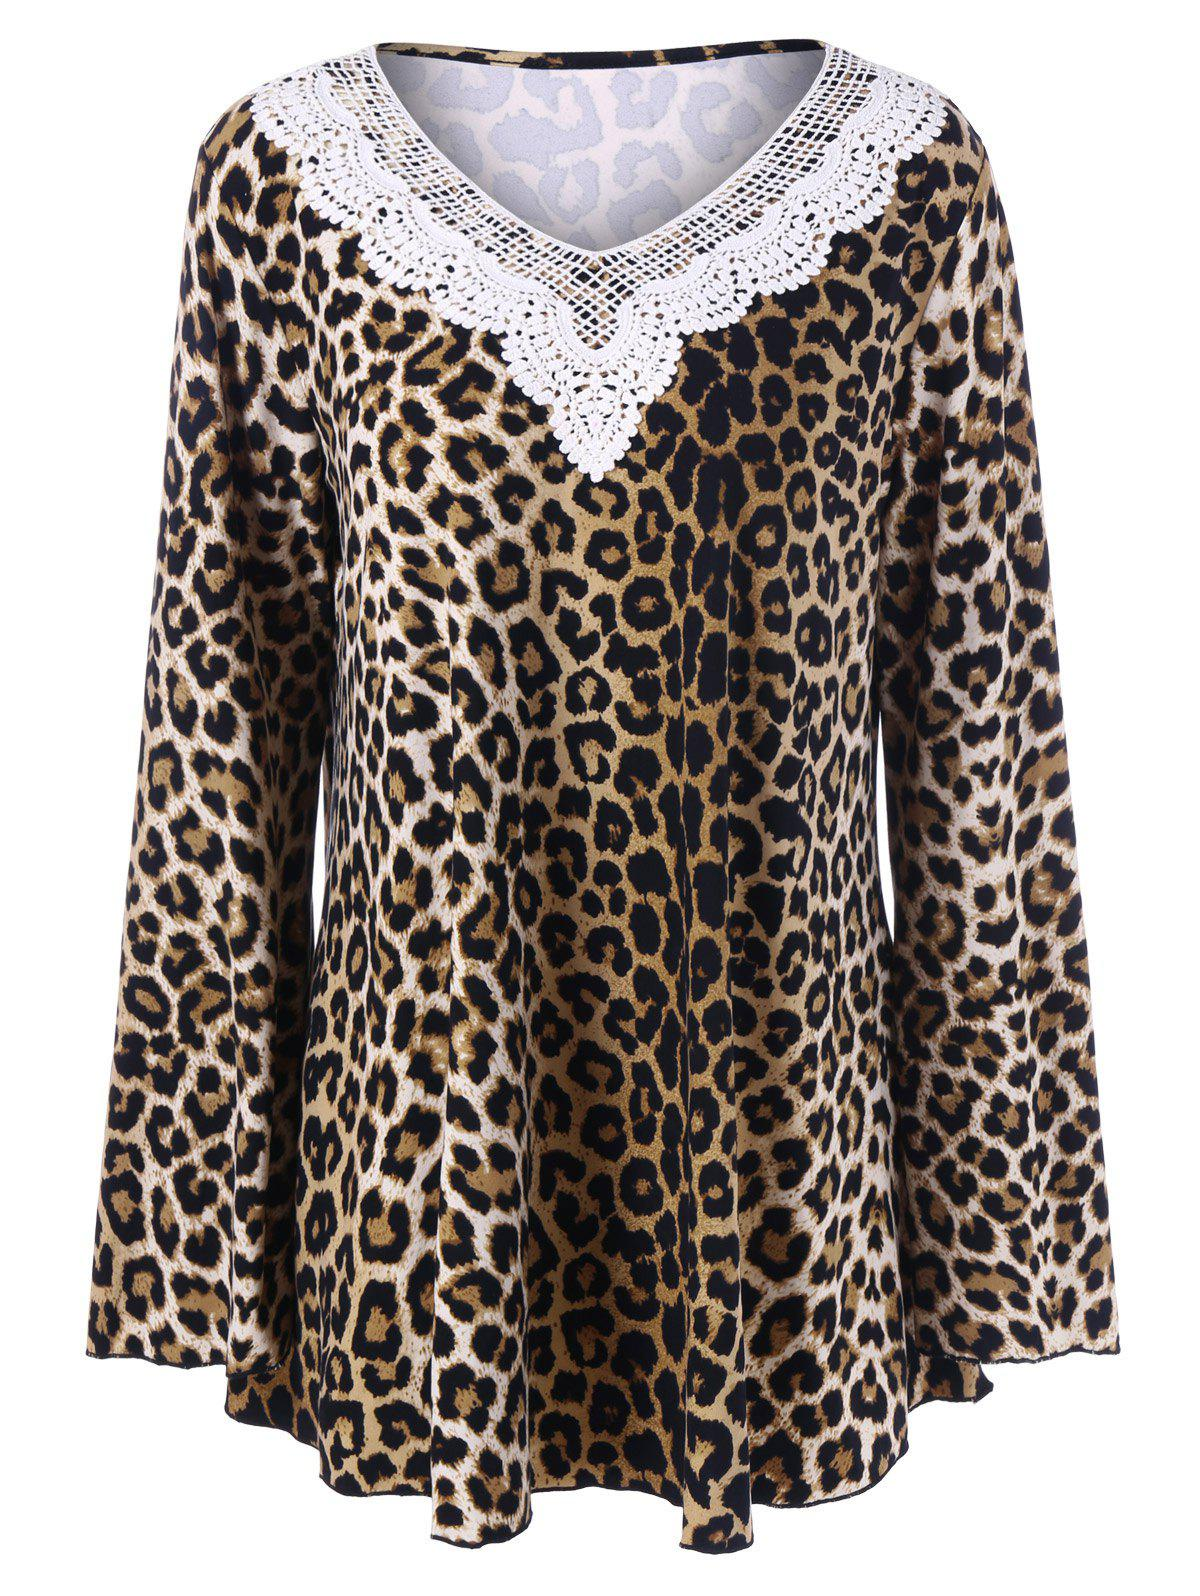 Plus Size Leopard T-Shirt